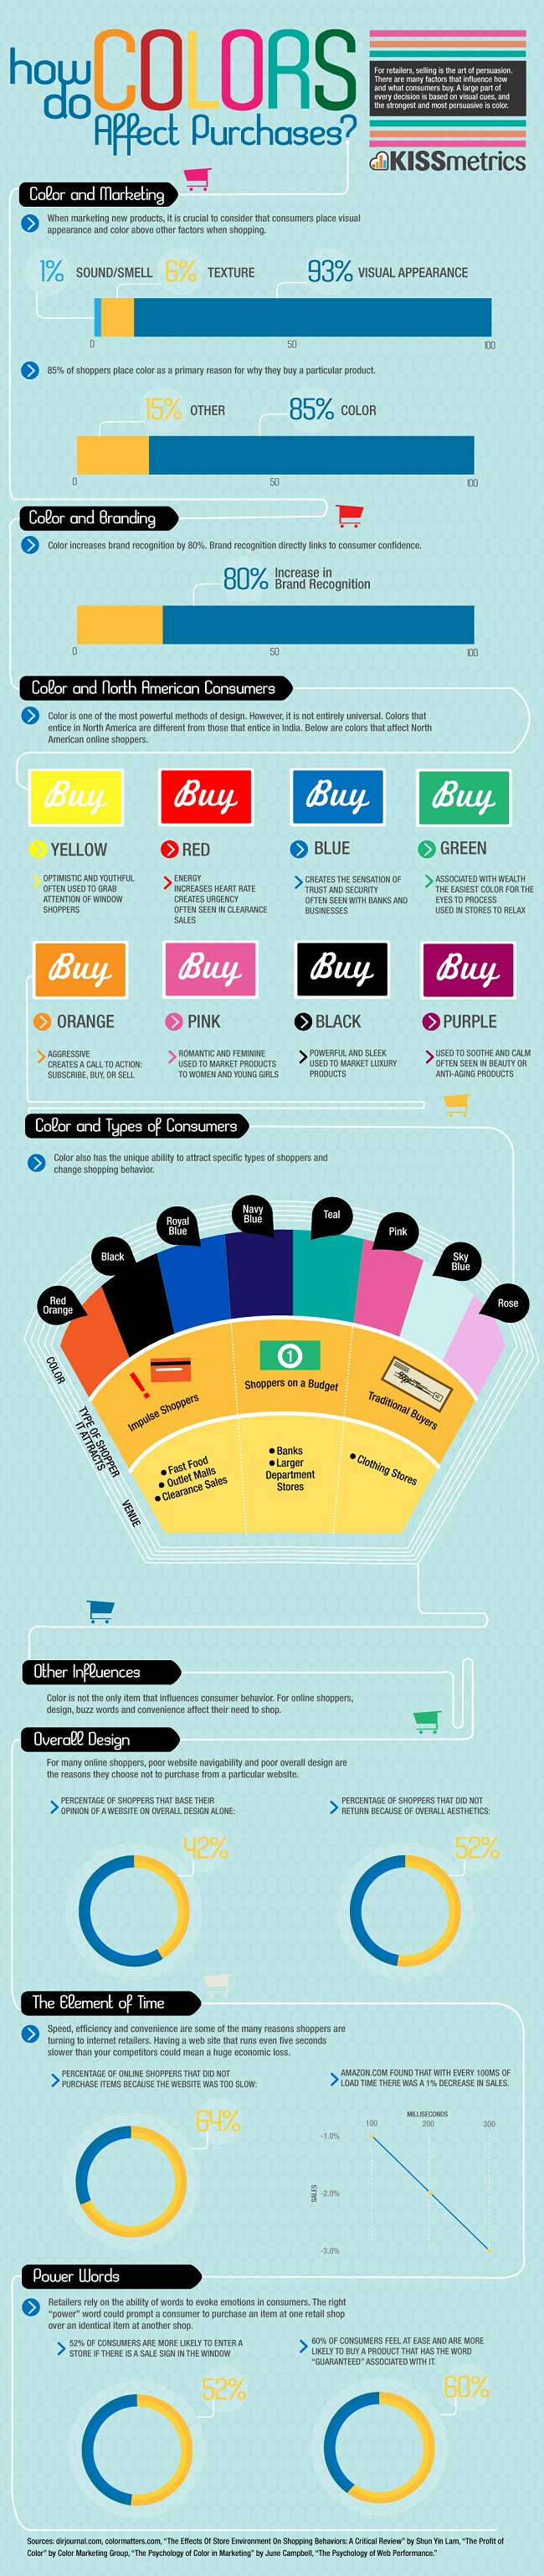 Color Purchases KISSmetrics